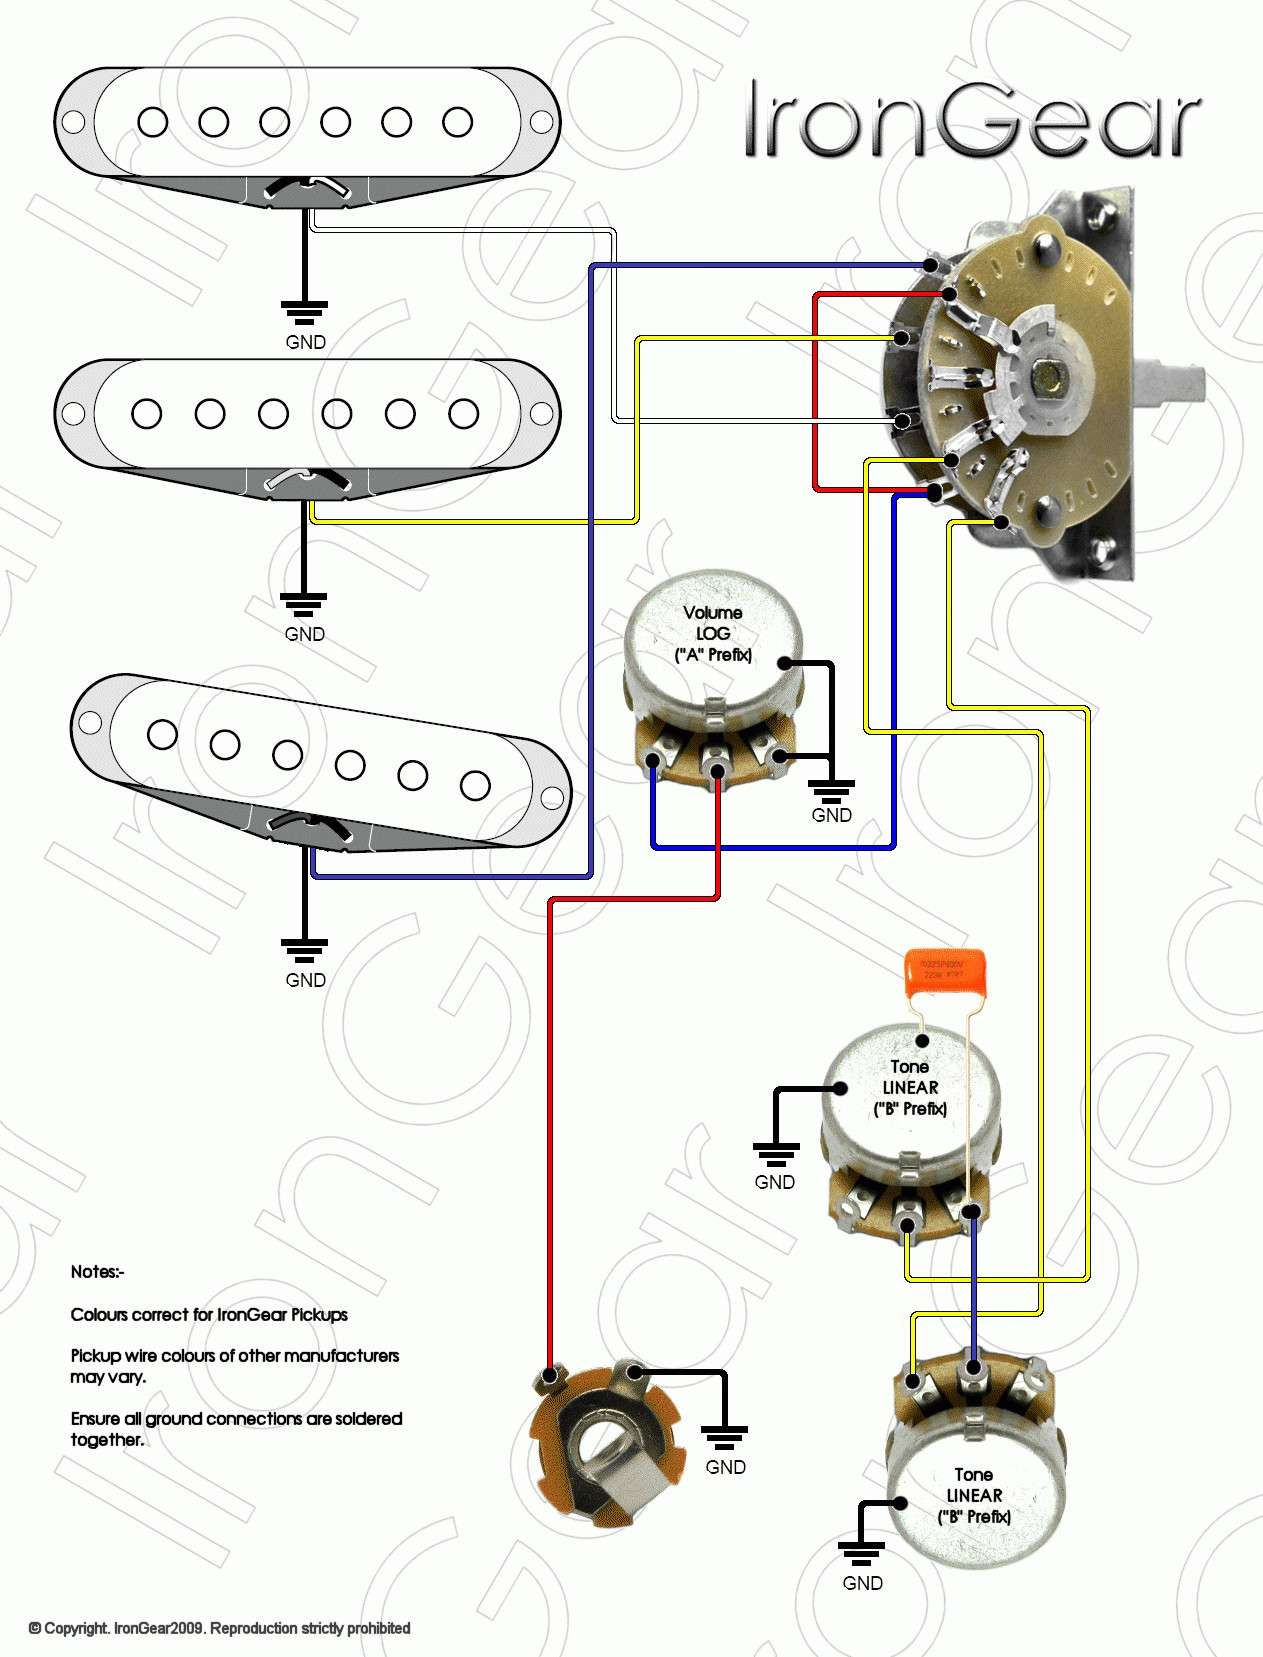 Wiring Diagram 3 Way Switch Elegant Wiring Diagram for 5 Way ... on